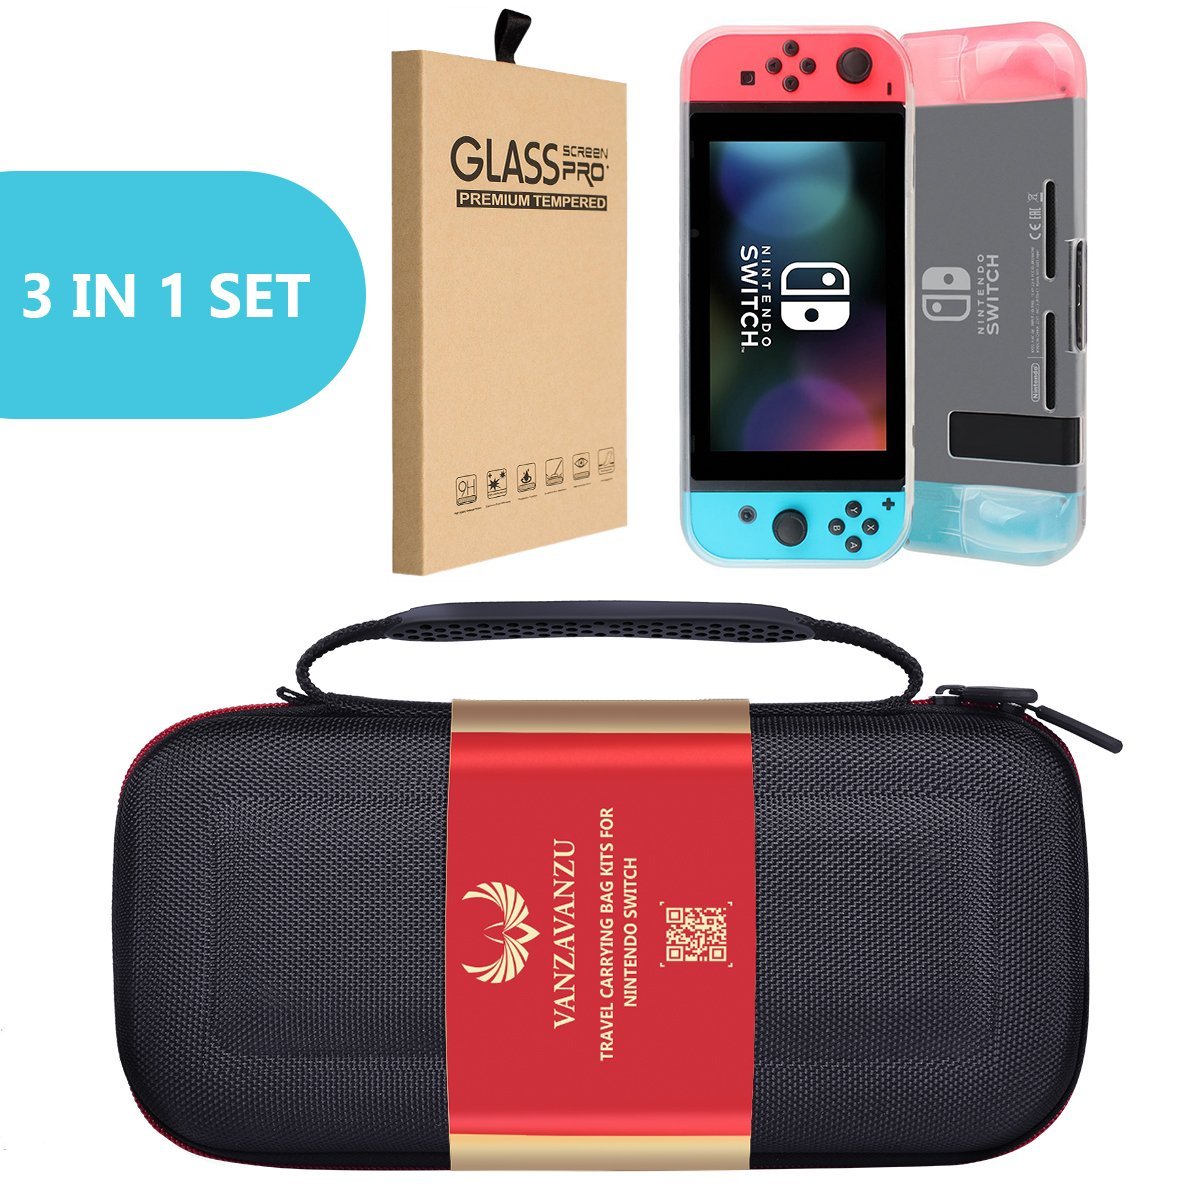 Travel Carrying Bag/TPU White Case/Tempered Glass - (3 in 1) Set - For Nintendo Switch, Hard Shell Case Travelling Anti-drop Carrying All